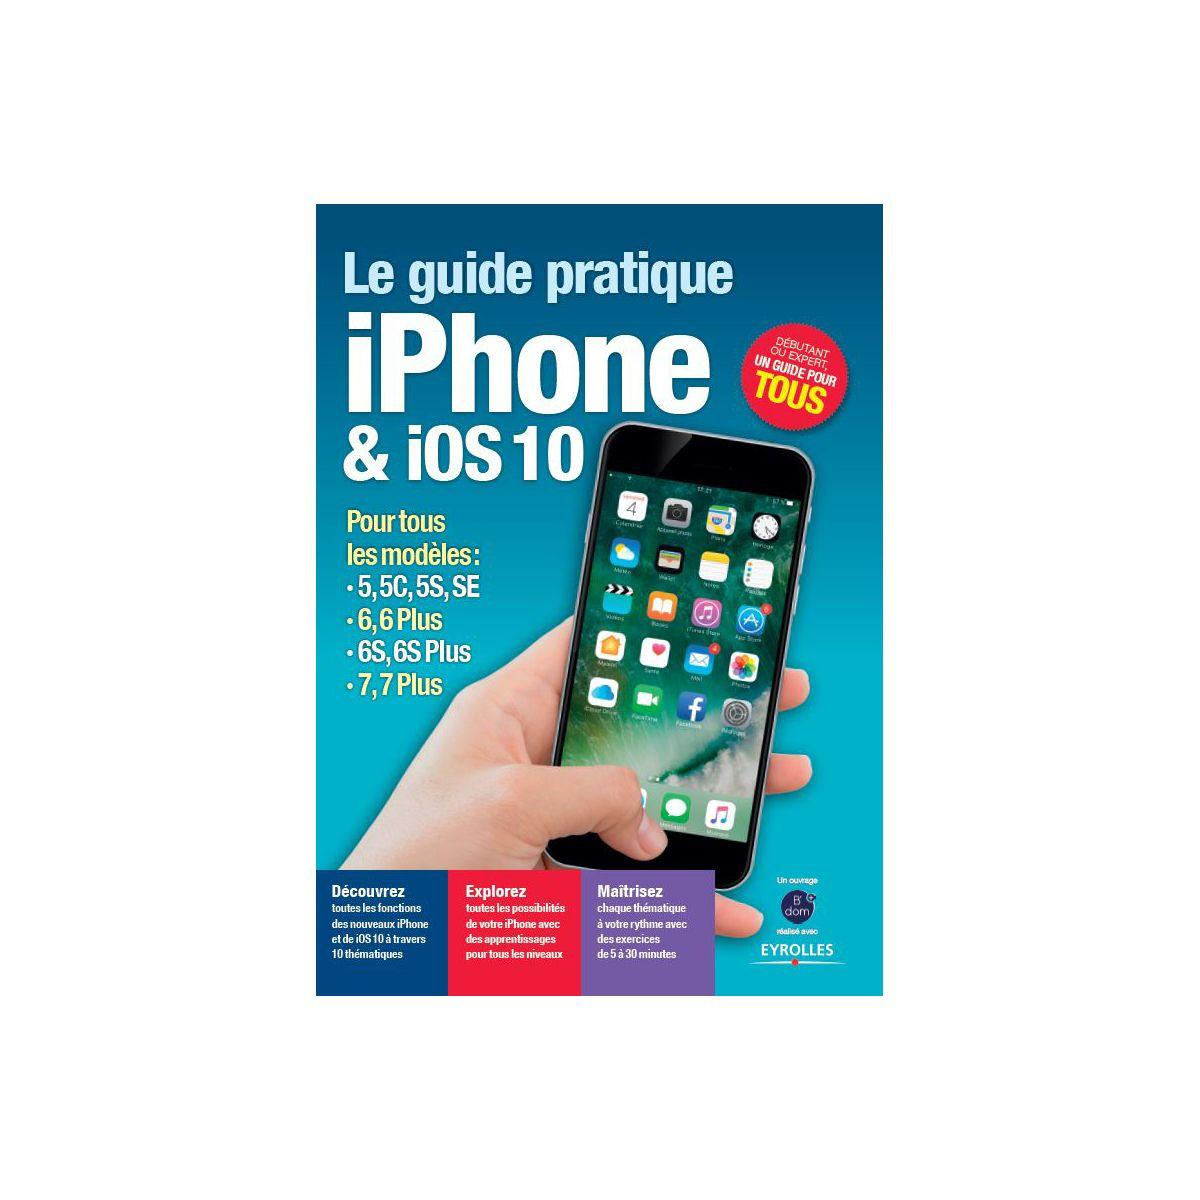 Librairie informatique bdom+ l'univers iphone ios10 (photo)